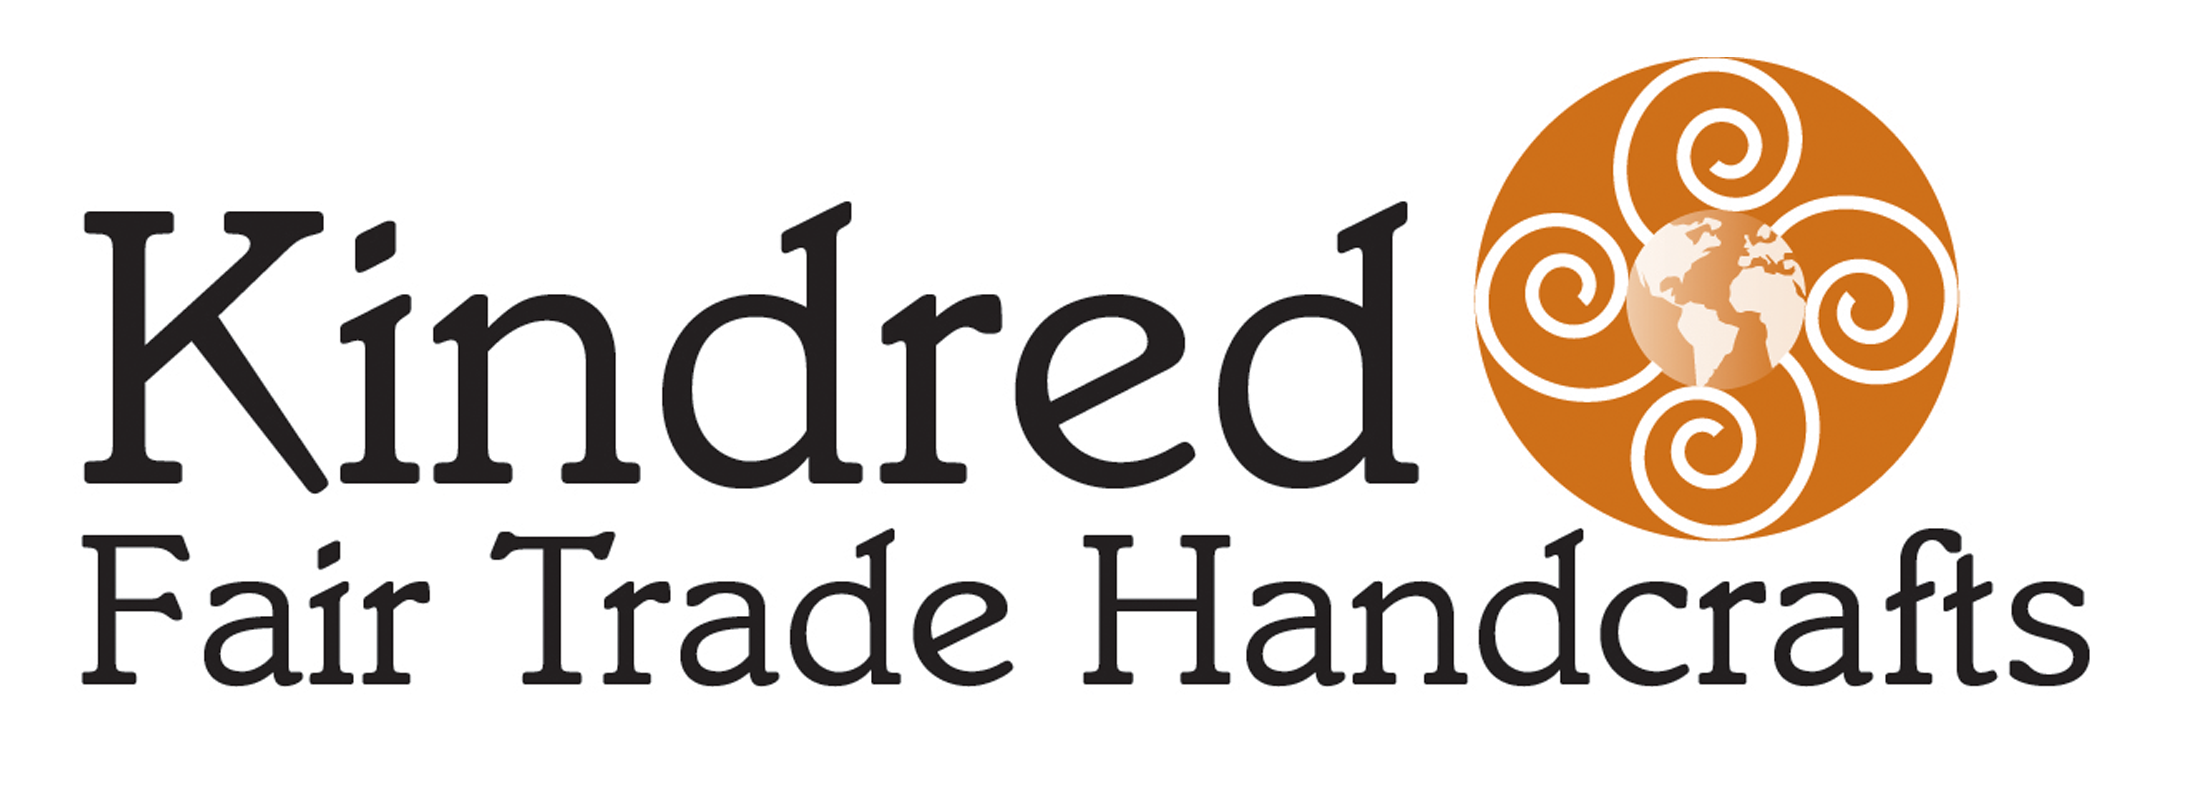 Kindred Fair Trade - PlanA Design